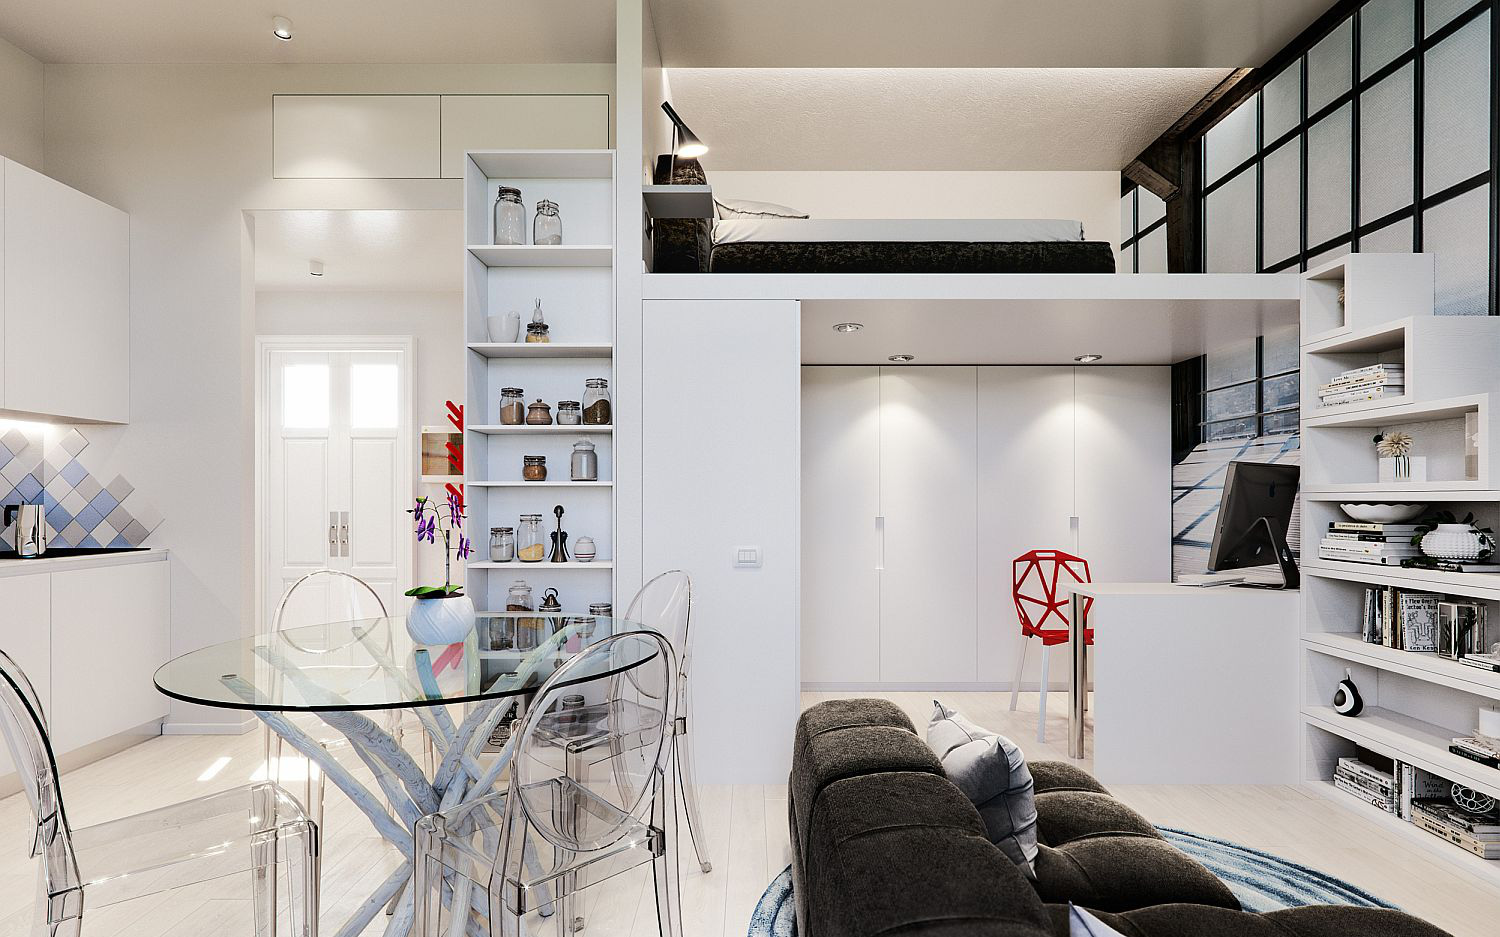 small-studio-apartment-for-sudents-to-rent-in-milan-has-a-space-savvy-modern-design-15911-1589209995195120004408-0-0-937-1500-crop-15892103708461271722199.jpg